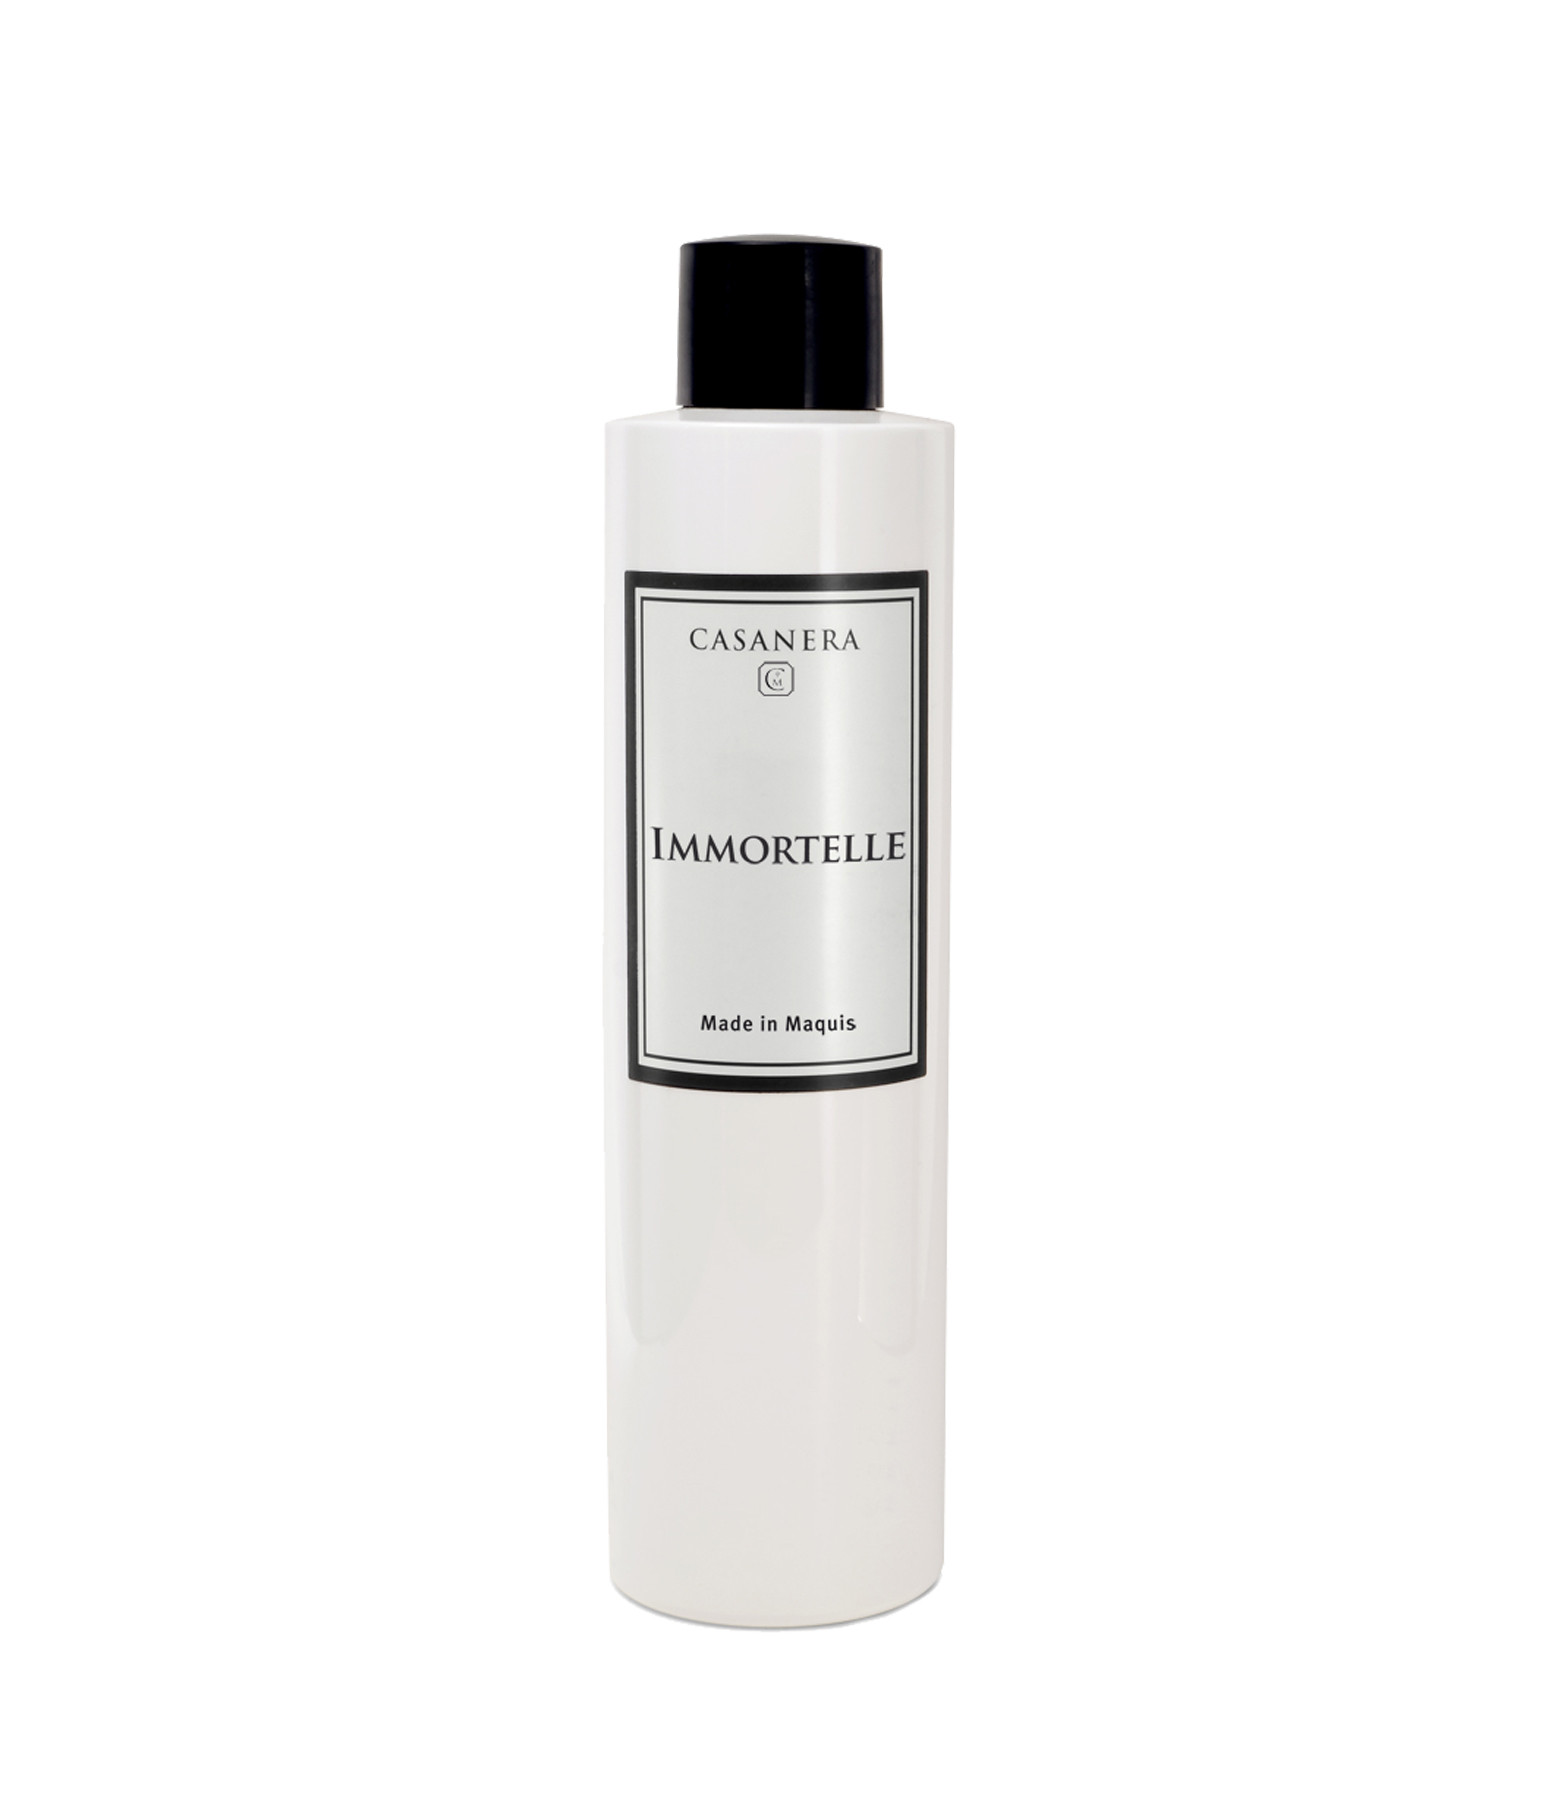 CASANERA - Recharge Diffuseur Immortelle 250ml